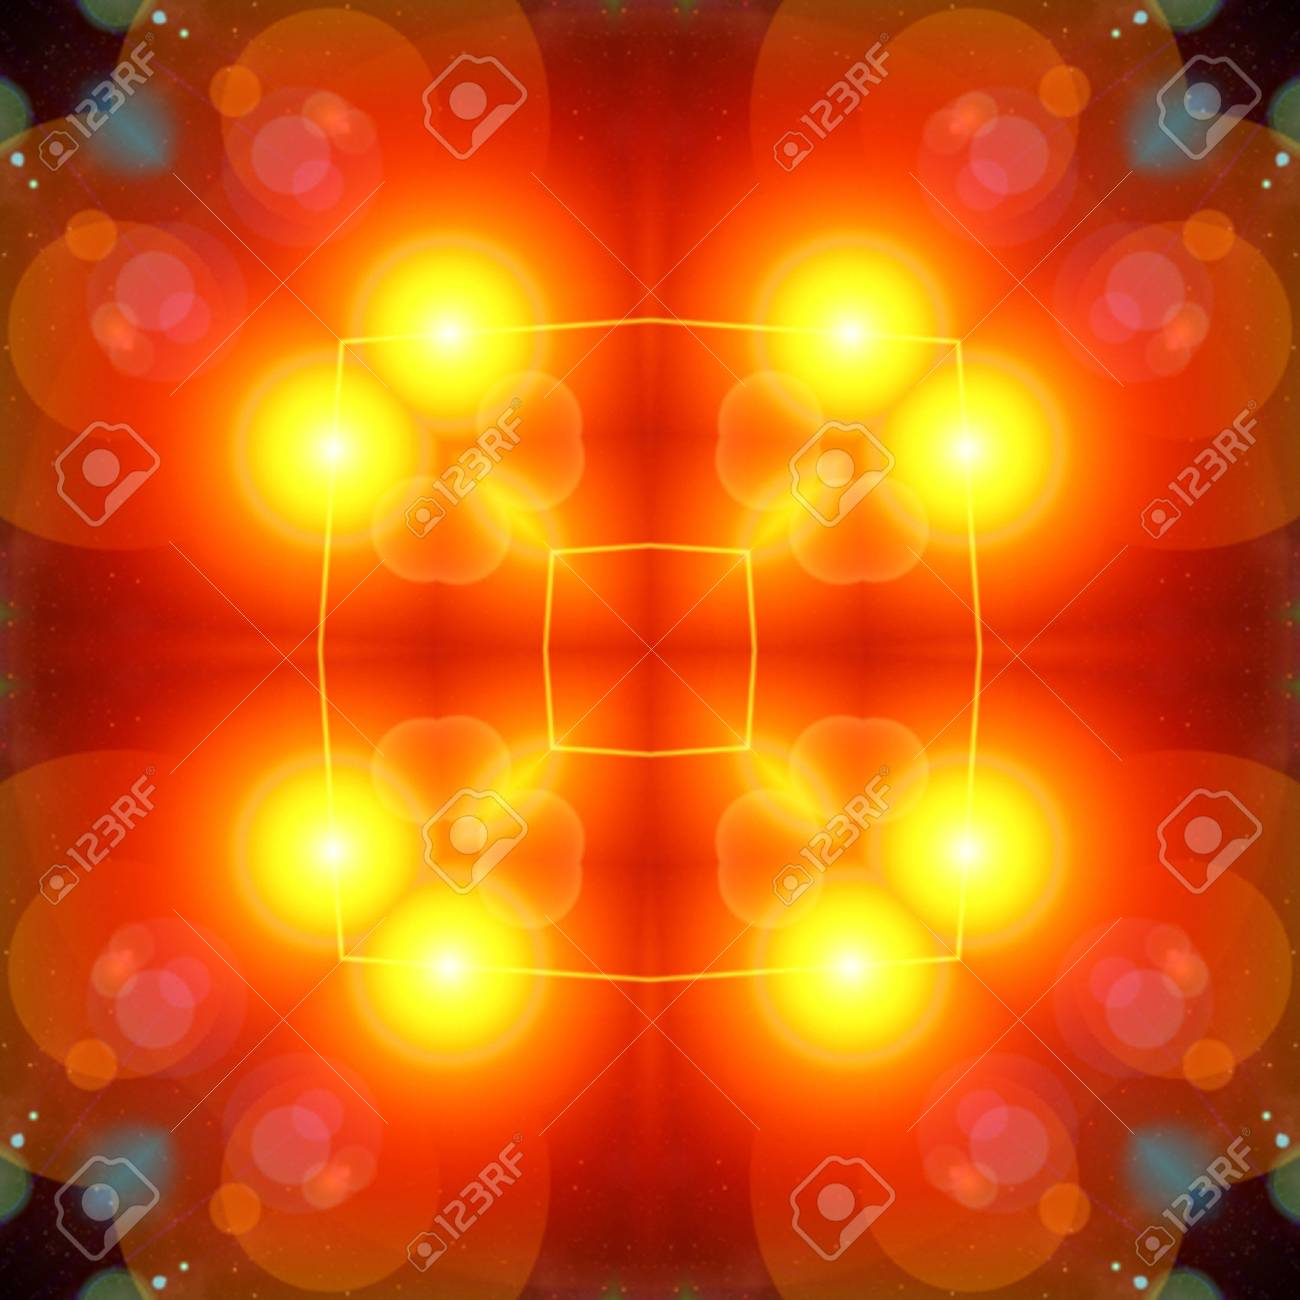 Modern Abstract Stock Photo - 4583431